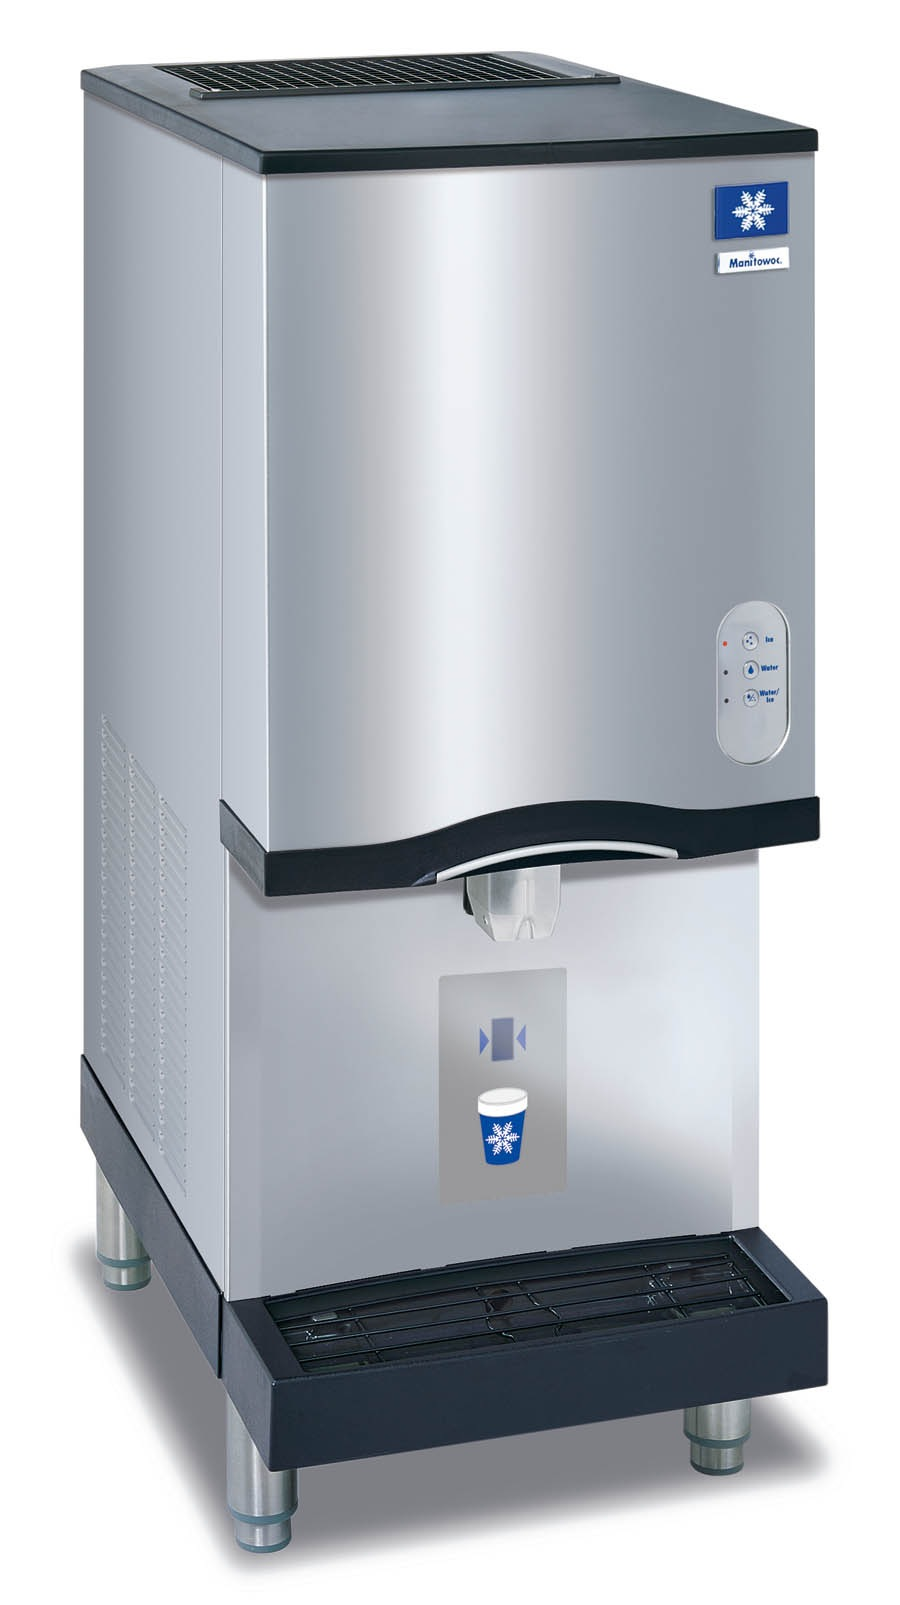 Countertop Ice Maker How Does It Work : Hands-free ice dispenser is ideal for healthcare - The Publicity ...